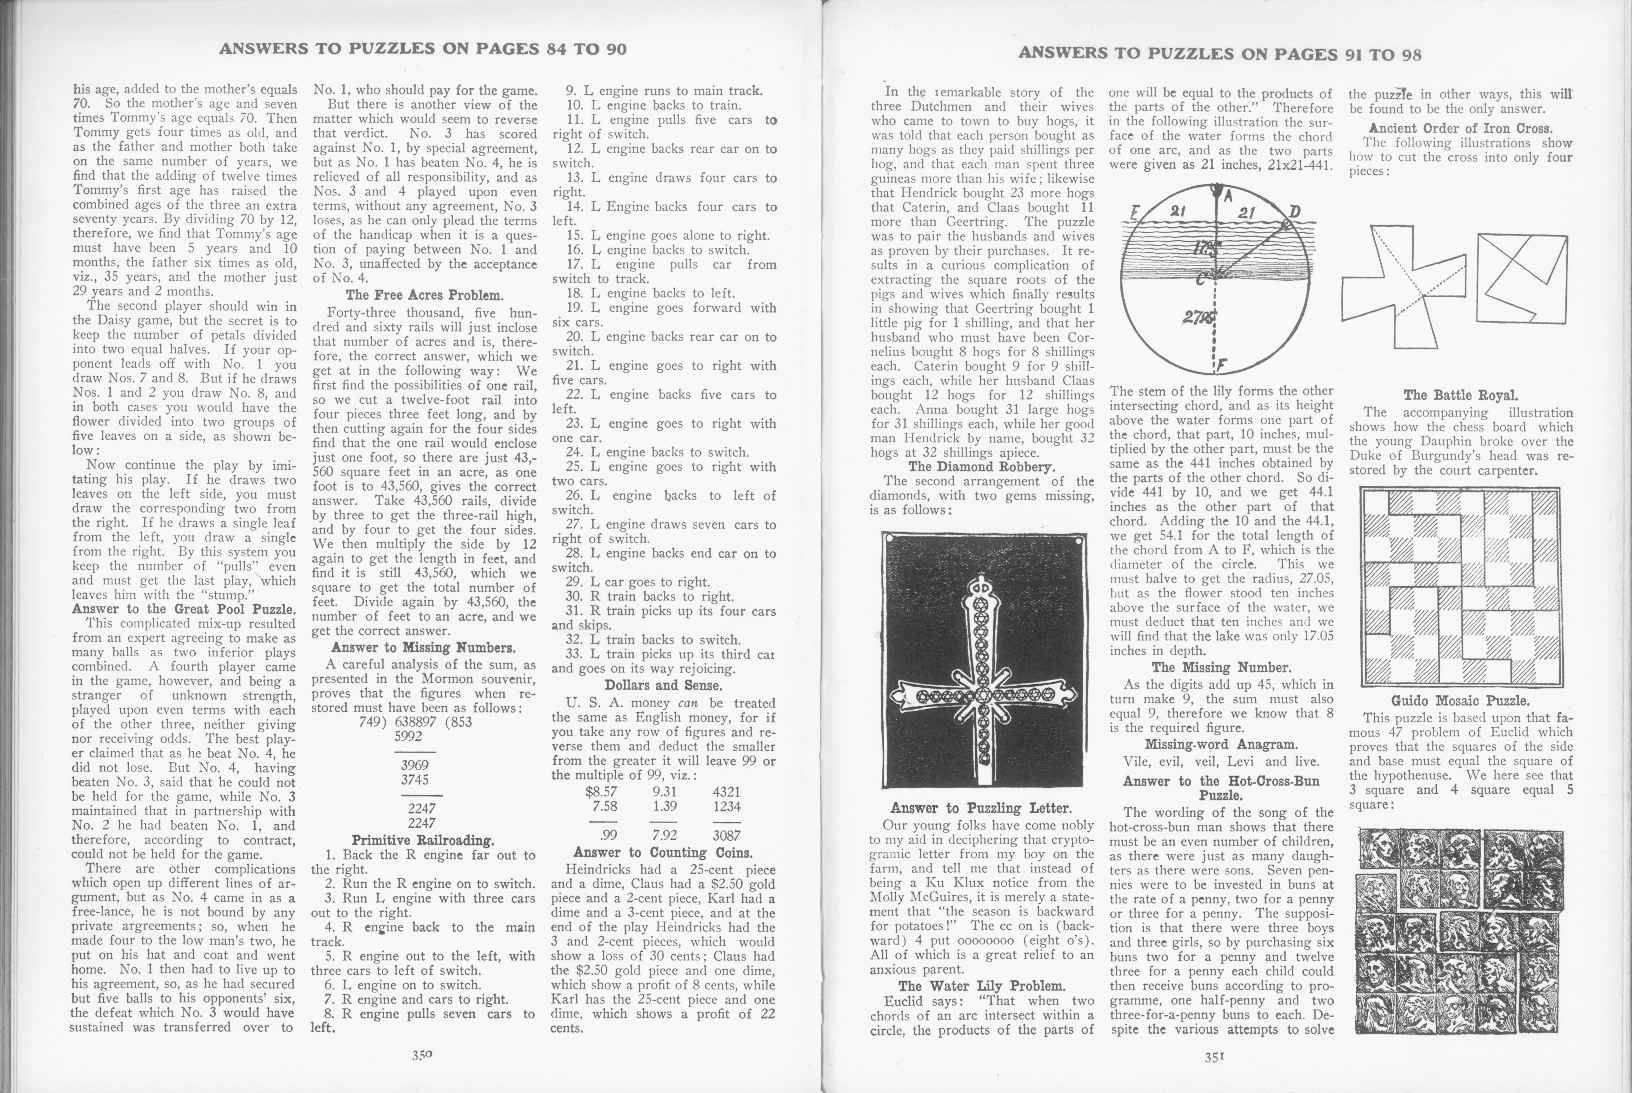 Sam Loyd - Cyclopedia of Puzzles - page 350-351